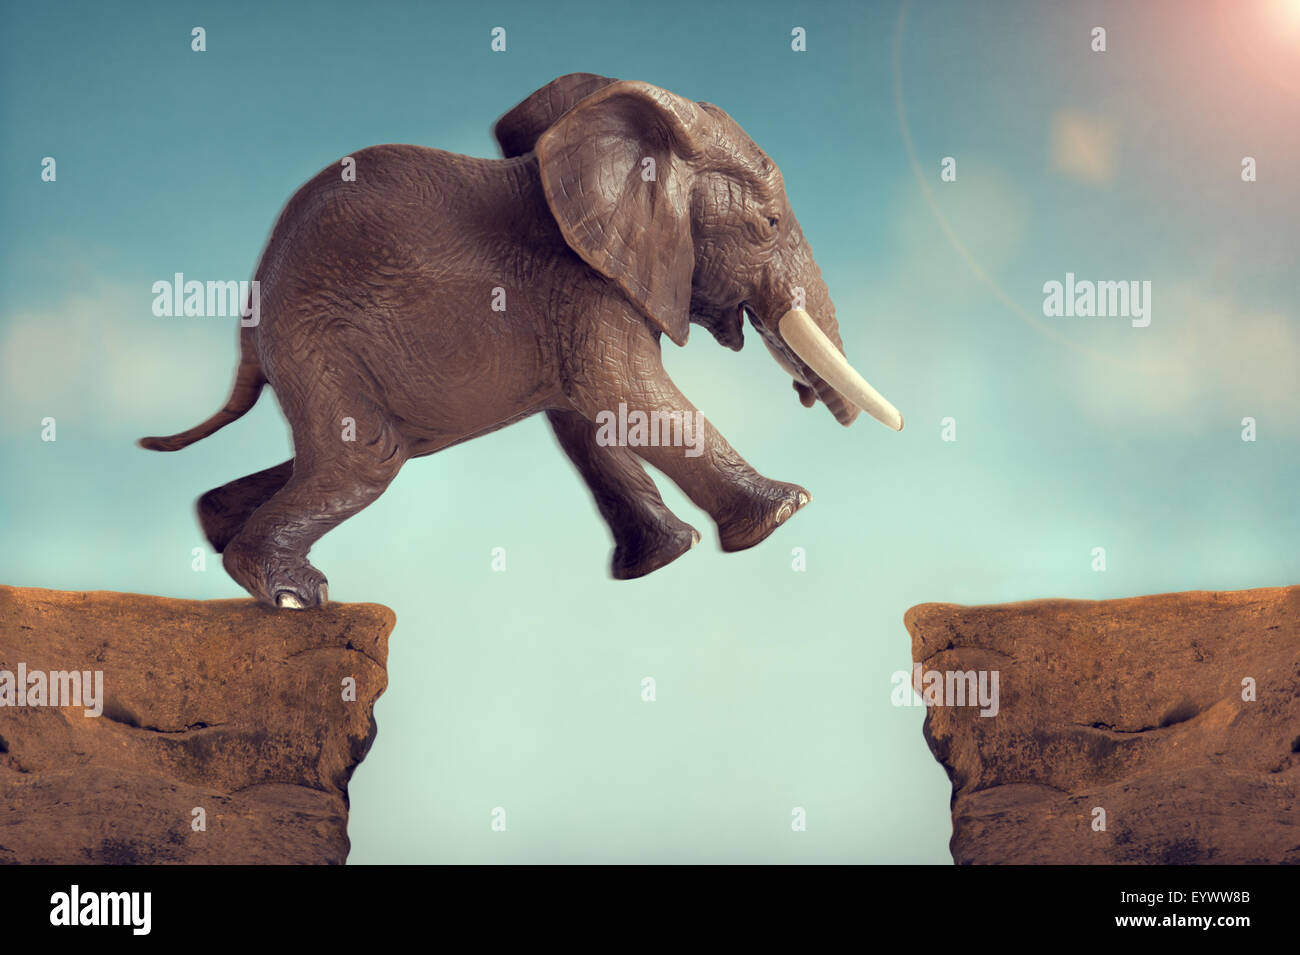 leap of faith concept elephant jumping across a crevasse - Stock Image